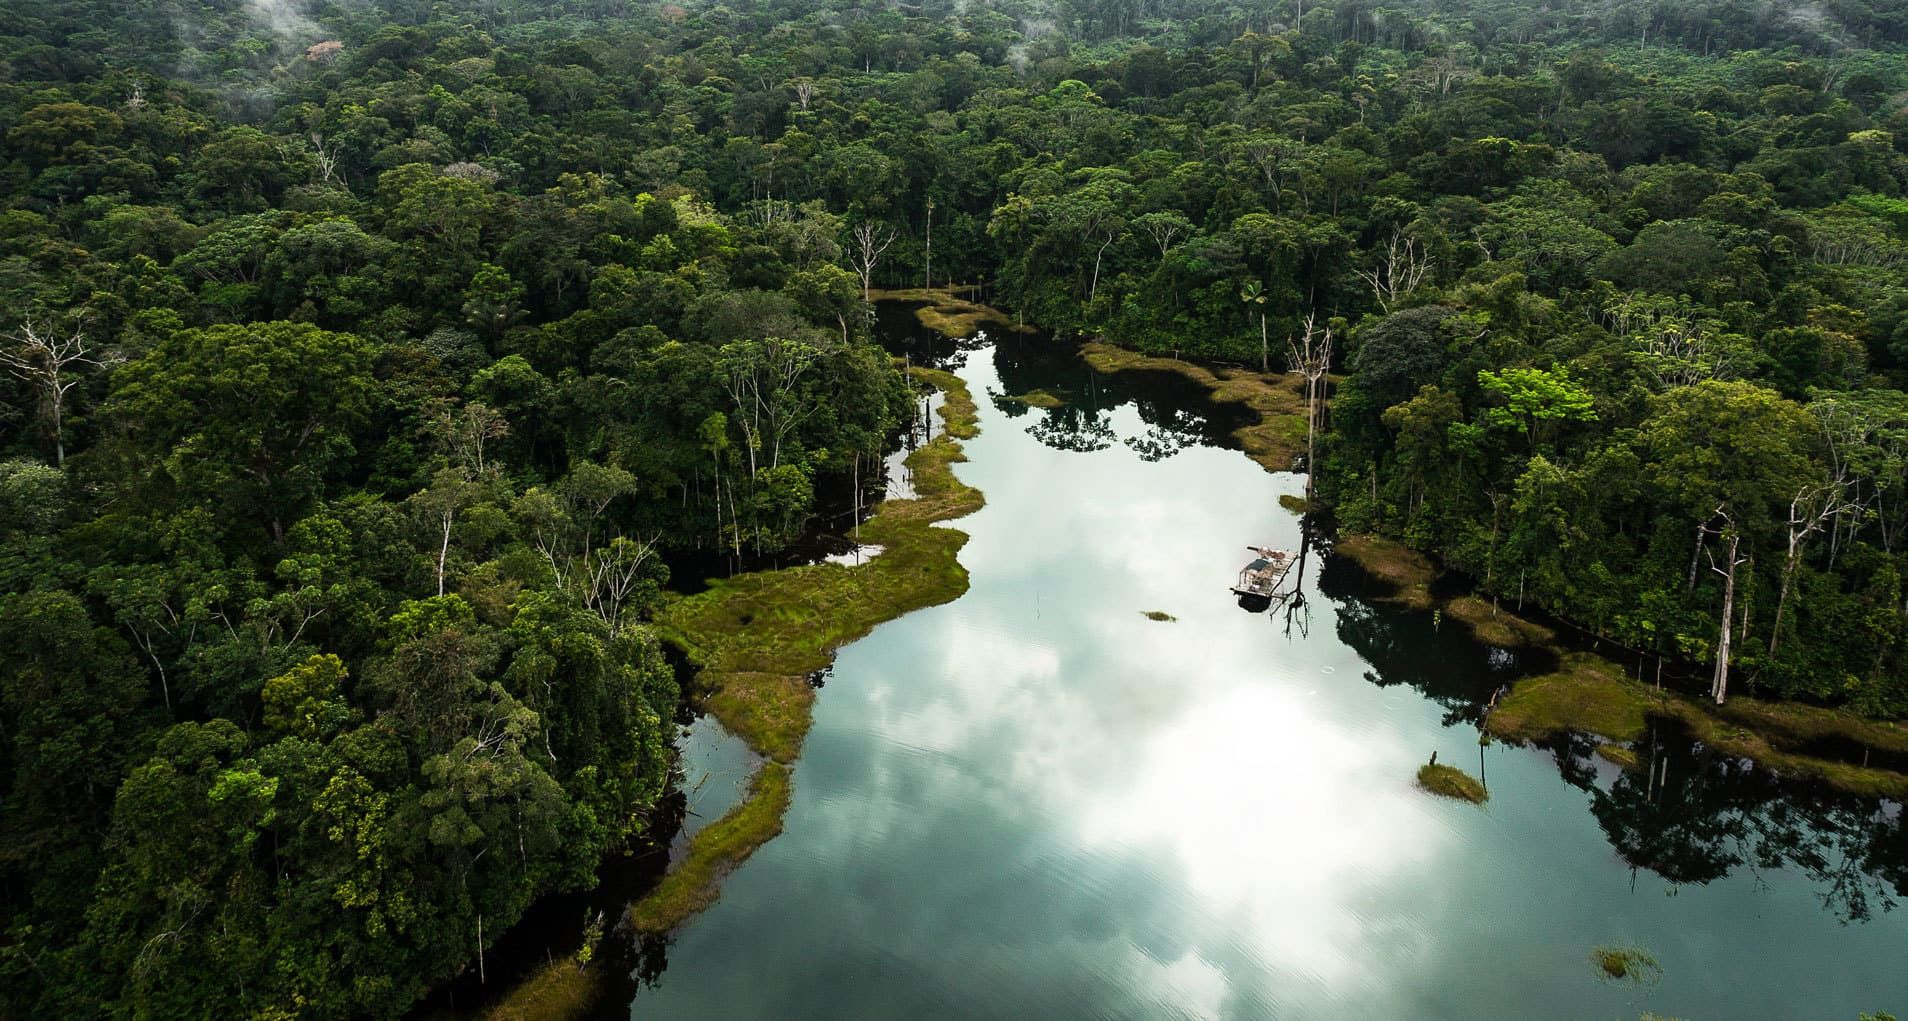 The Amazon – Heart of the Earth